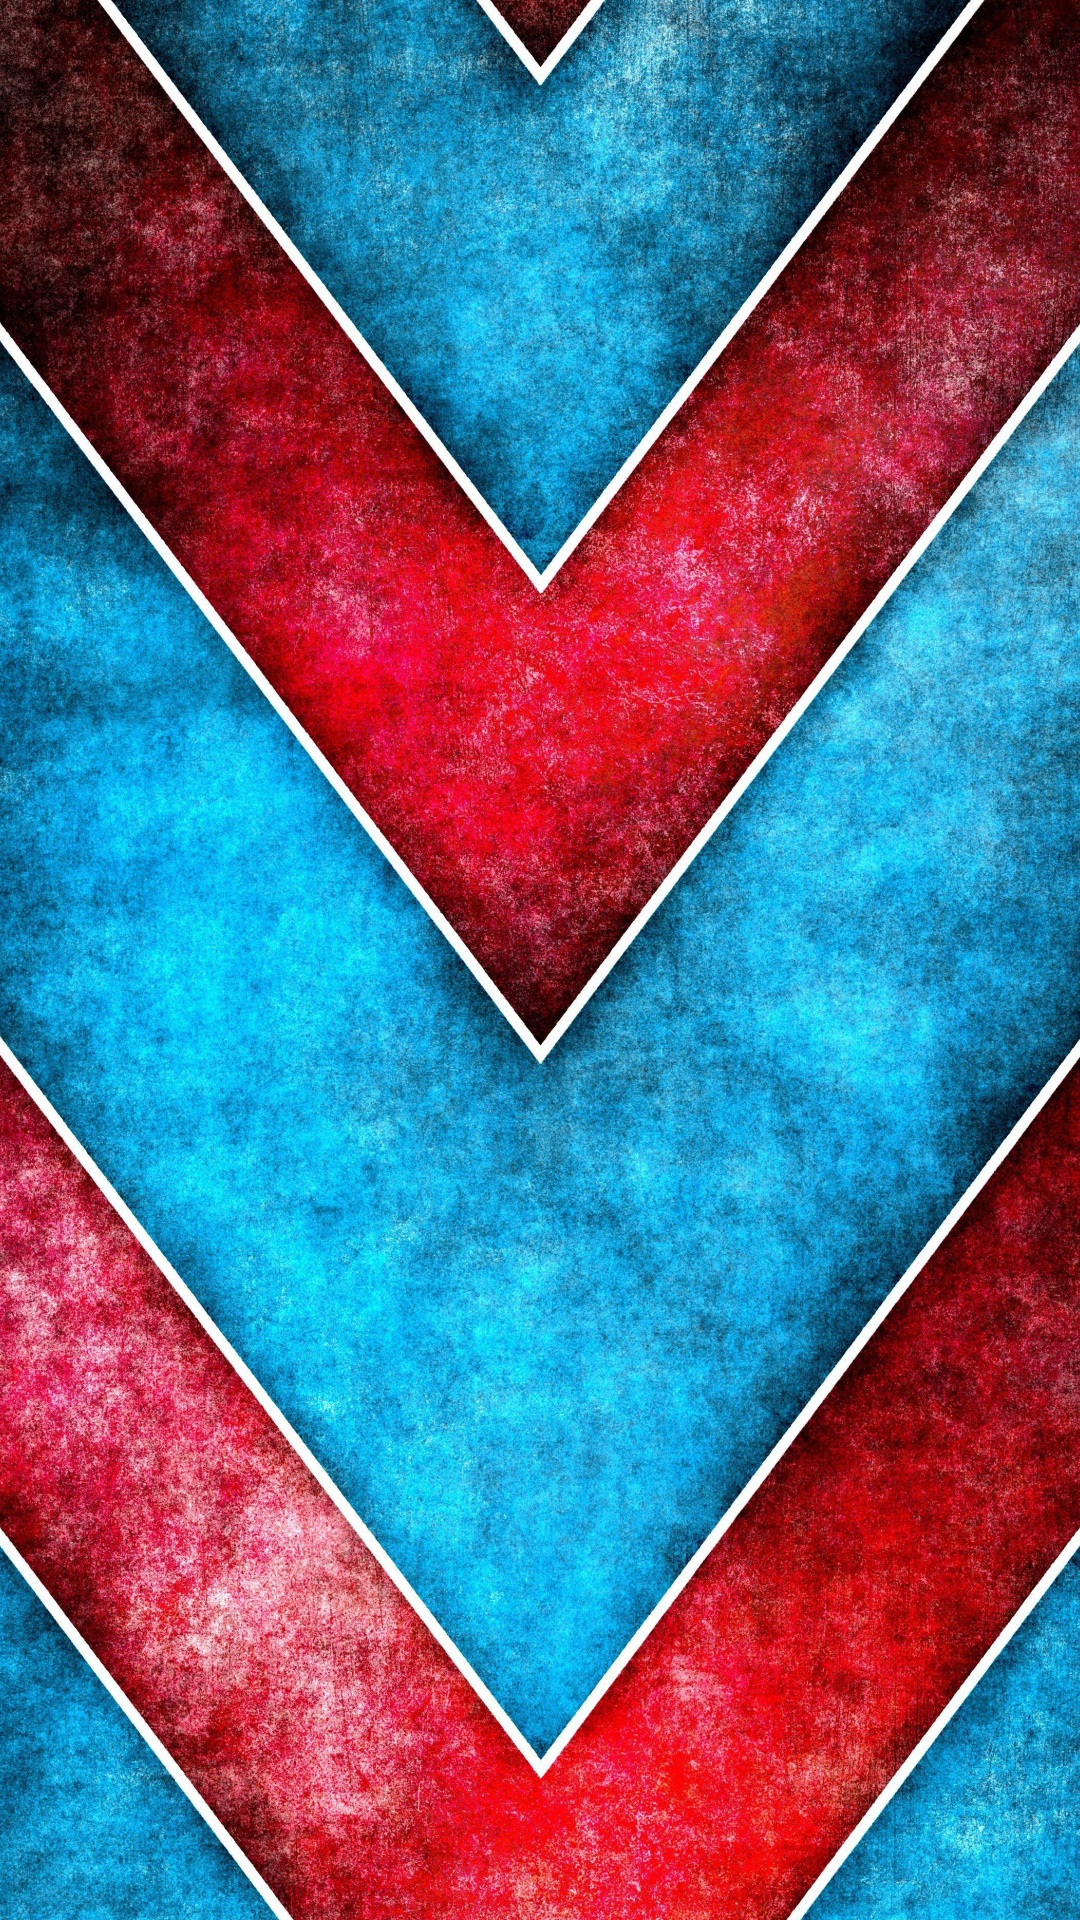 Blue And Red Iphone Wallpaper Hd